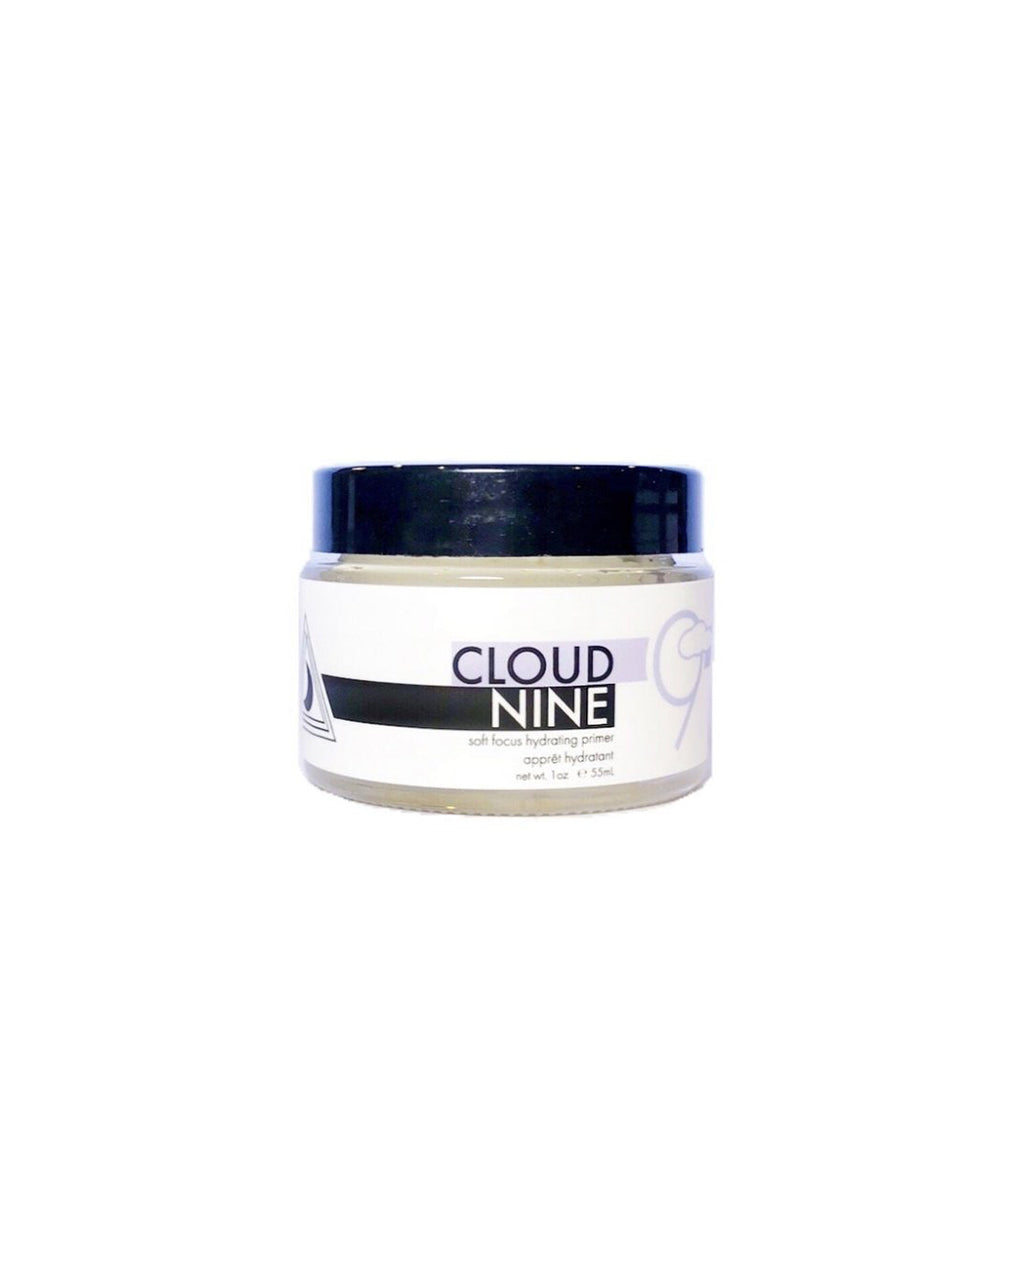 small canister of cloud nine moisturizer